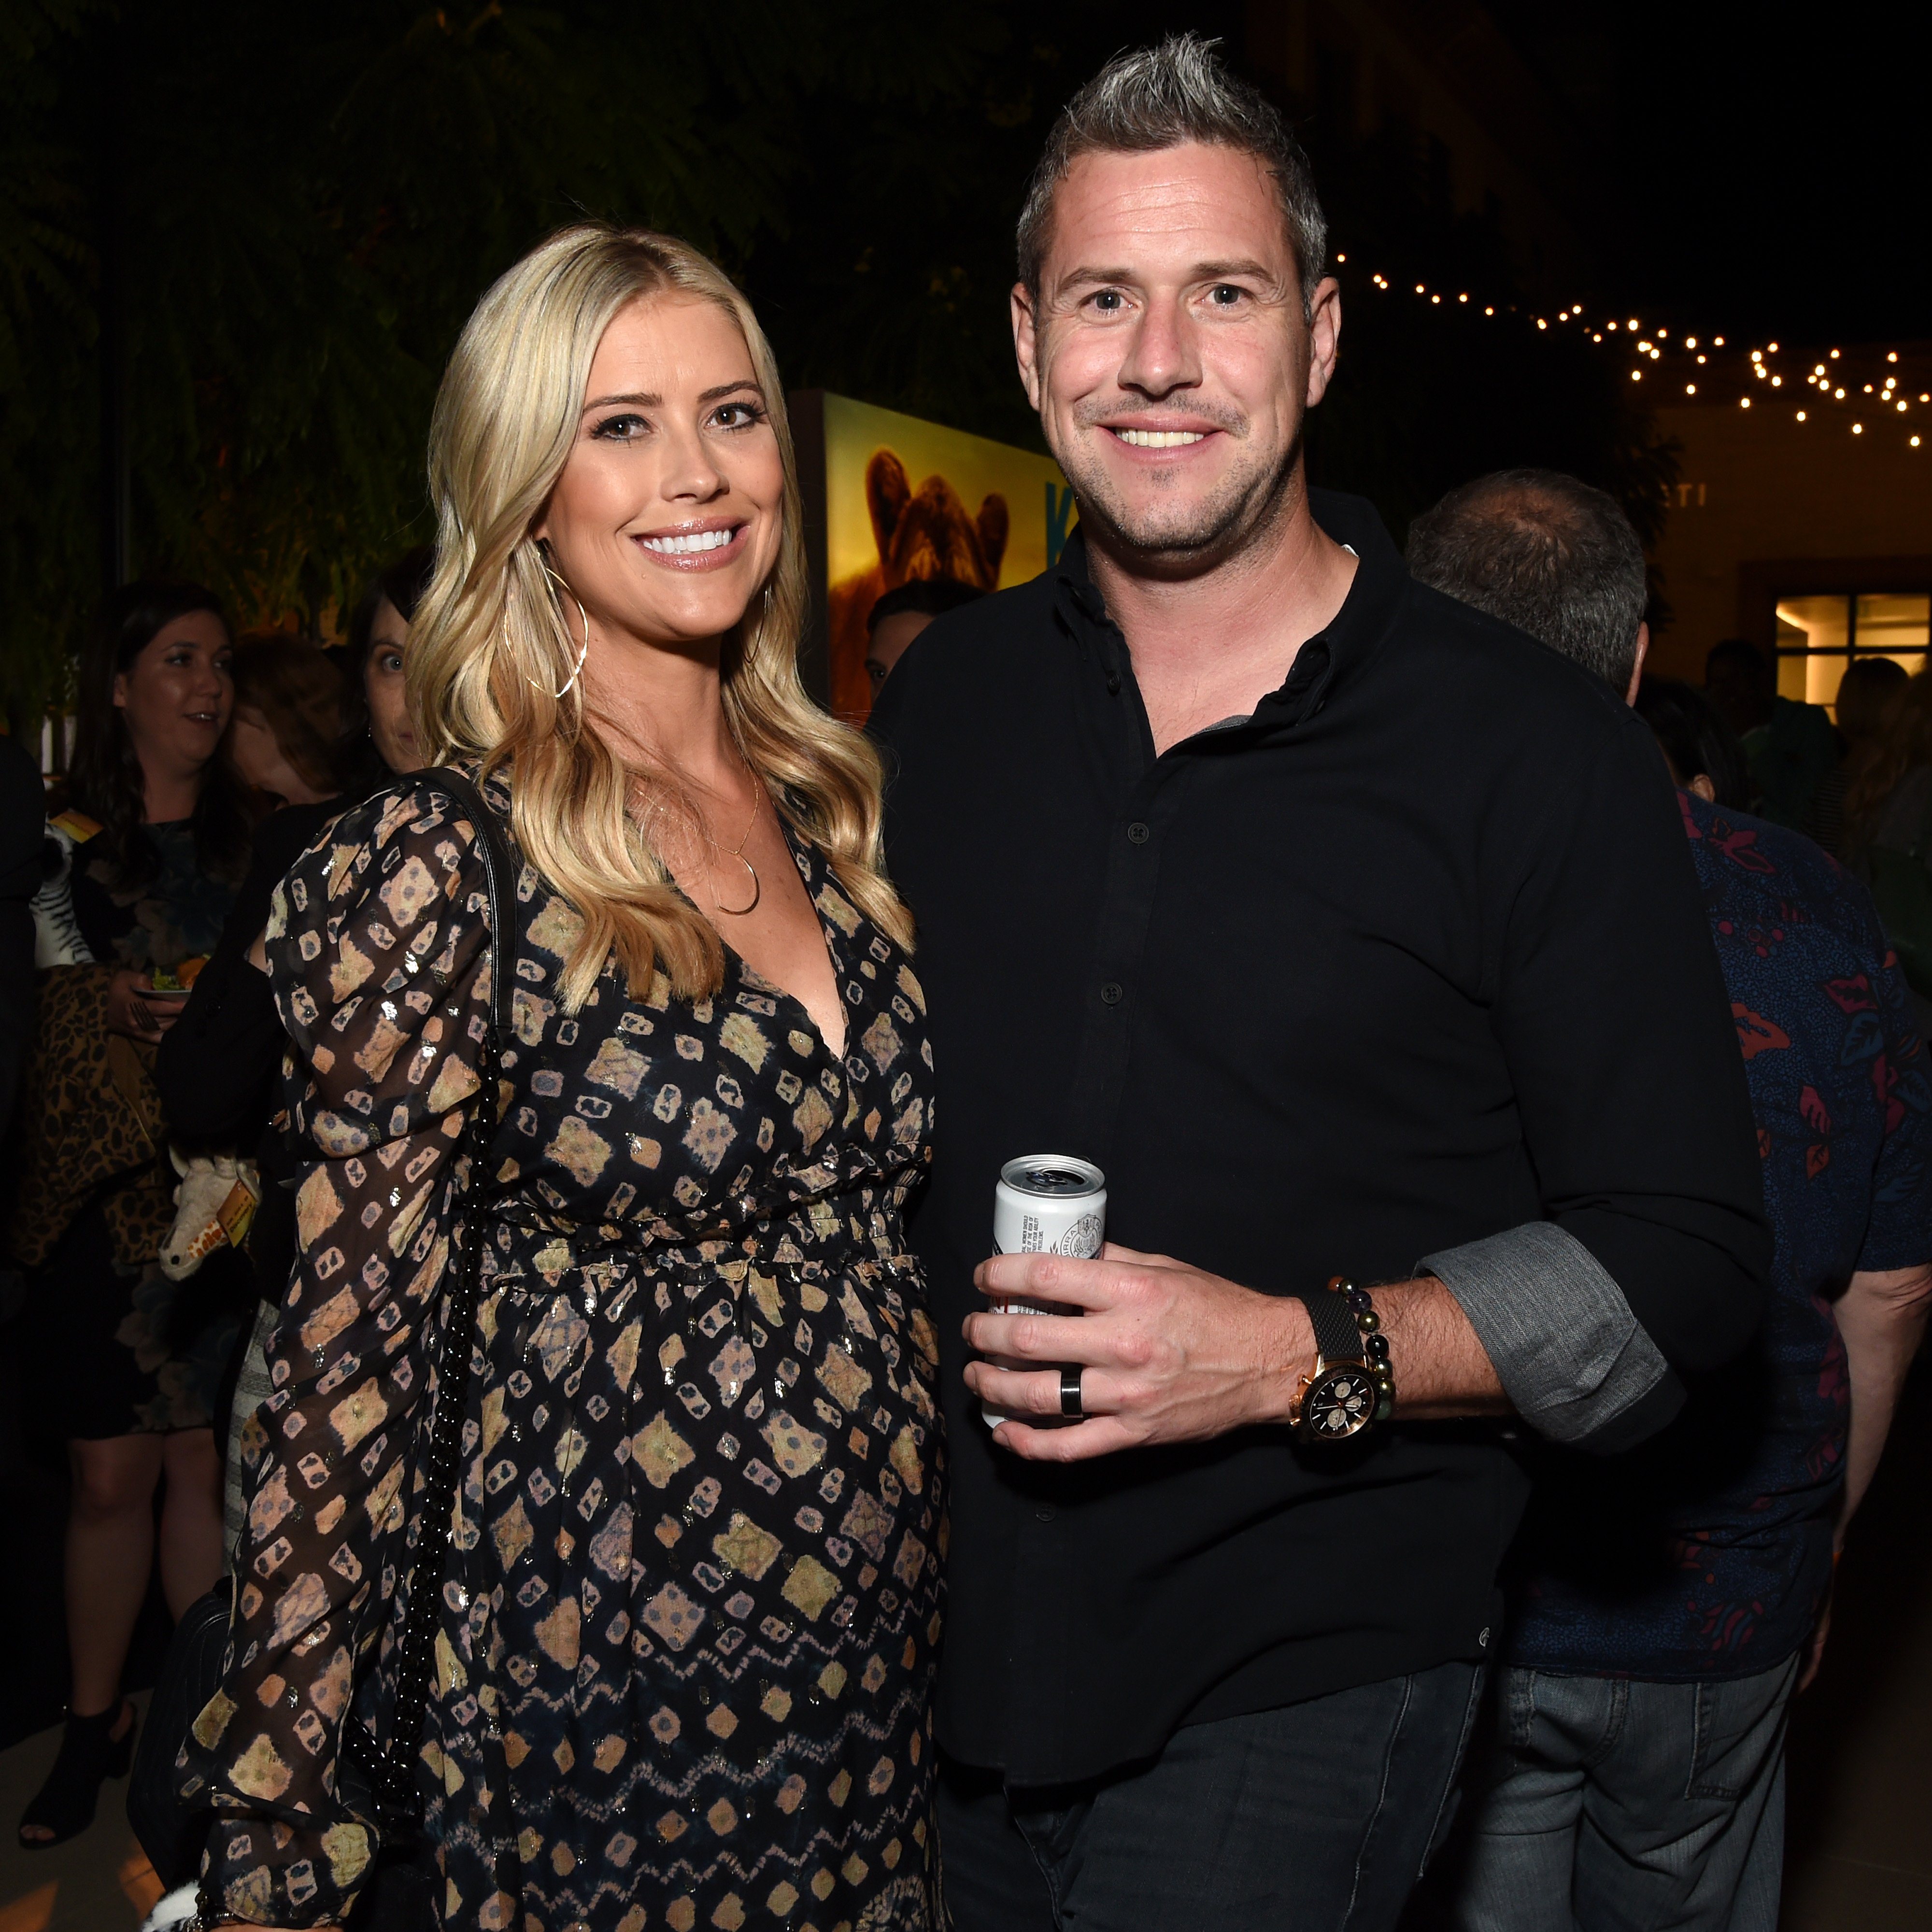 """Christina and Ant Anstead at the """"Serengeti"""" premiere on July 23, 2019 in Beverly Hills, California 